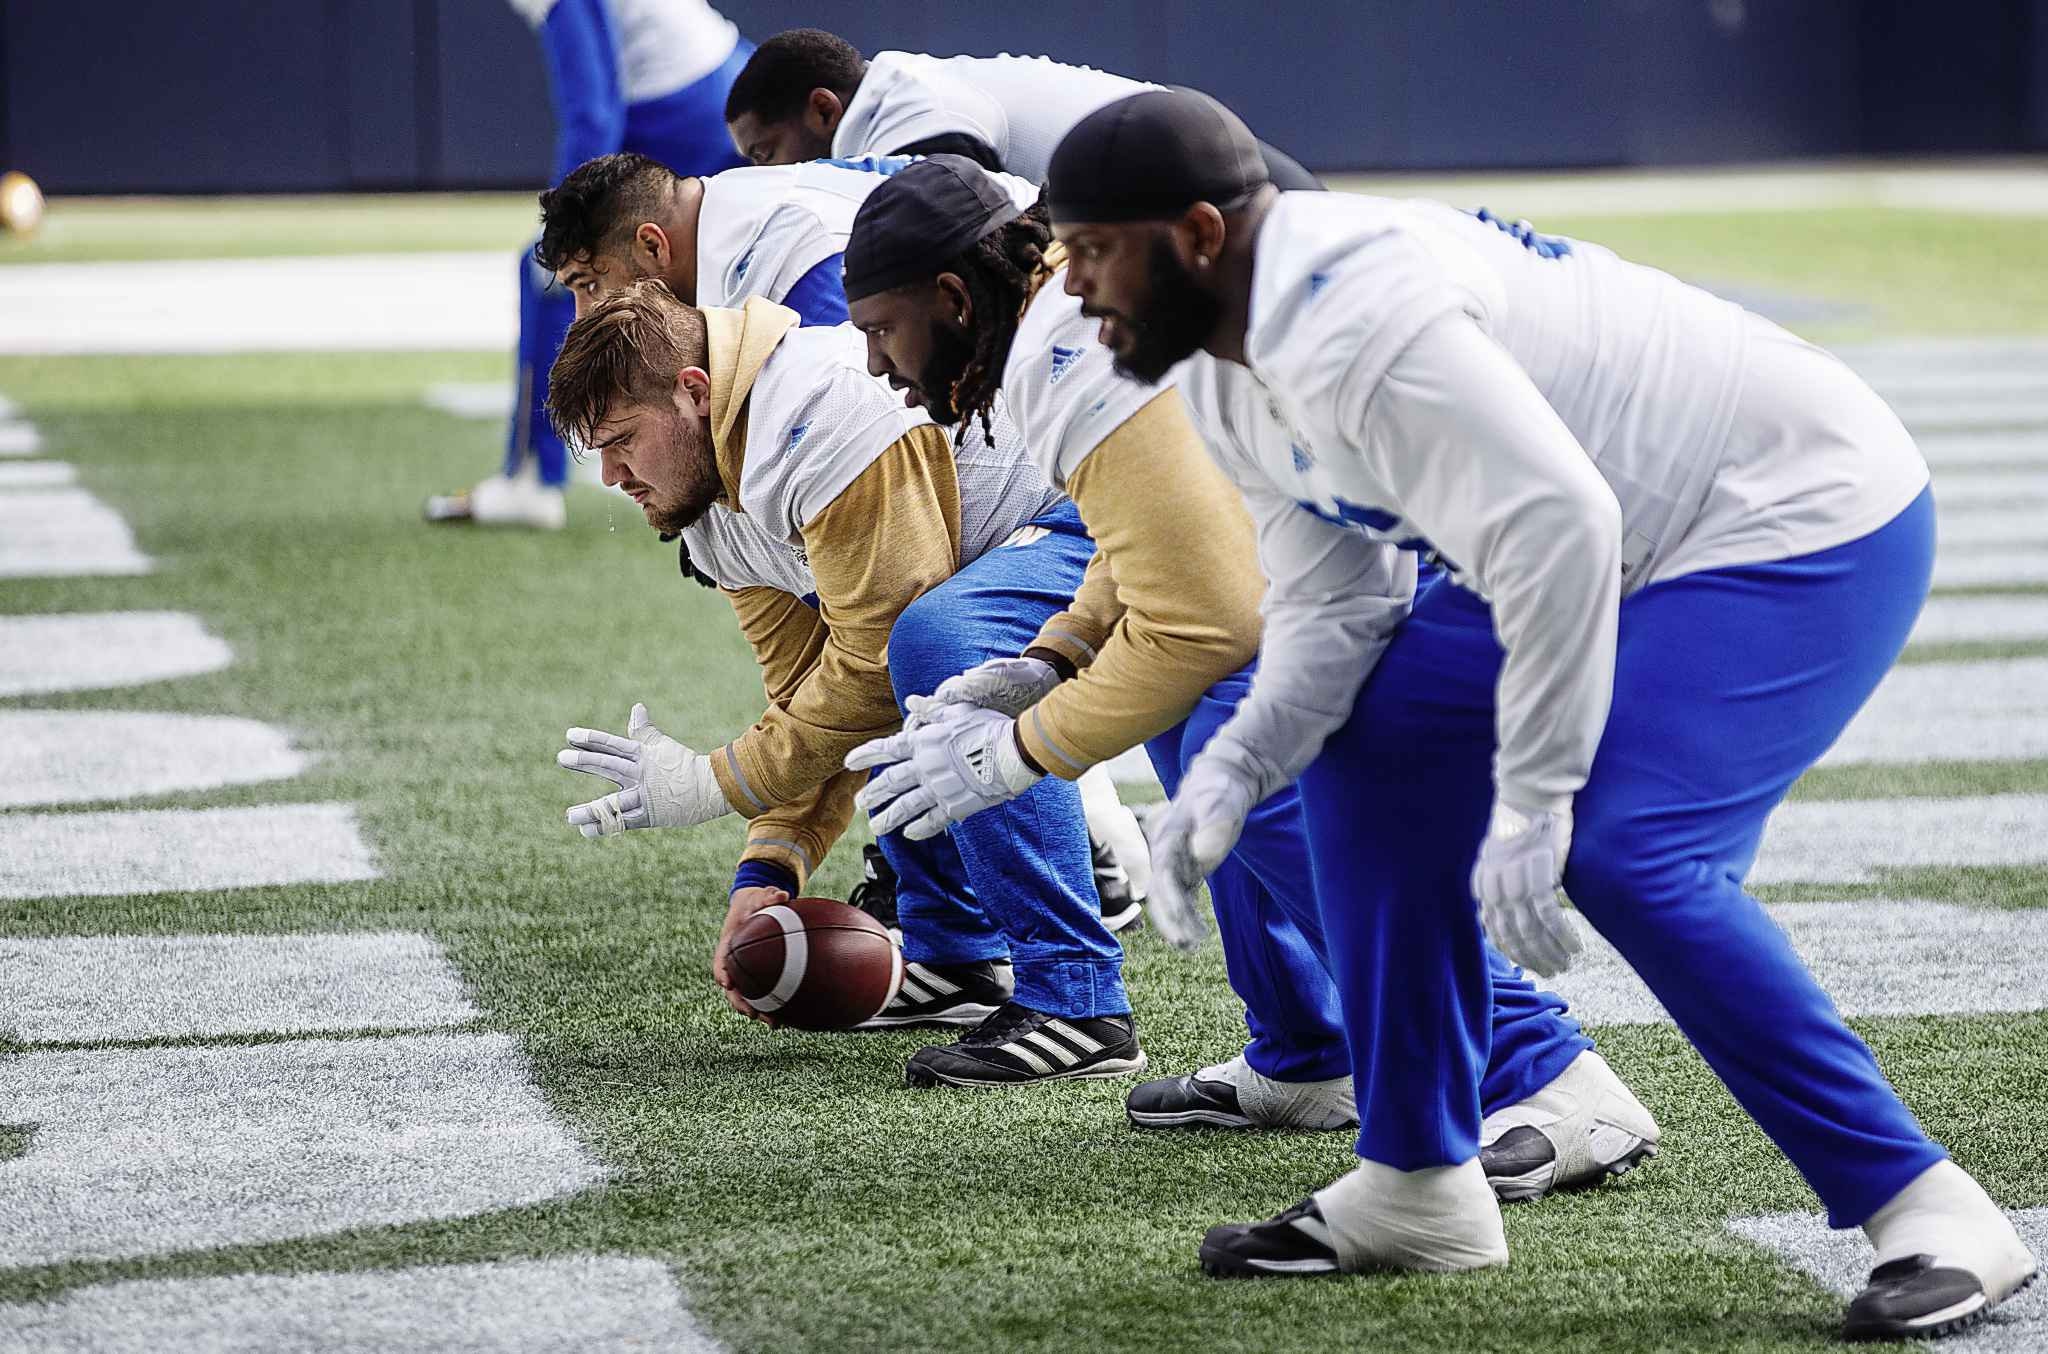 Winnipeg Blue Bombers centre Matthias Goossen, with ball, and the rest of the O-line are looking to return to form as one of the best units in the league this season.